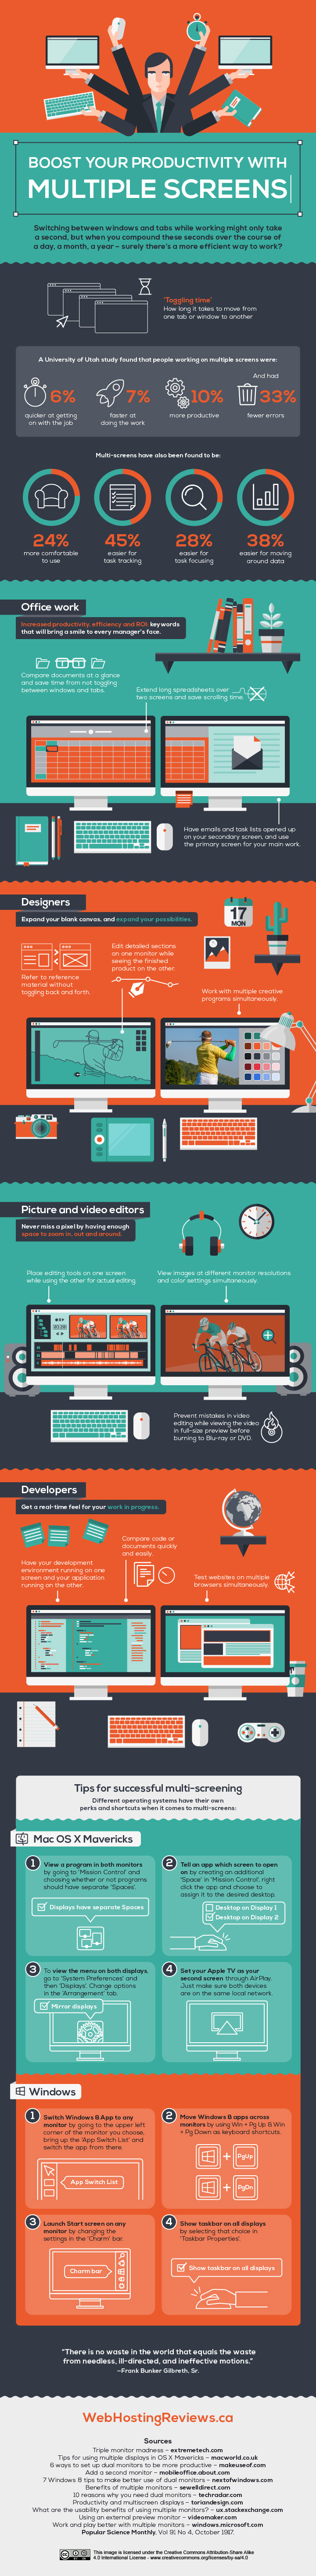 Boost Your Productivity With Multiple Screens